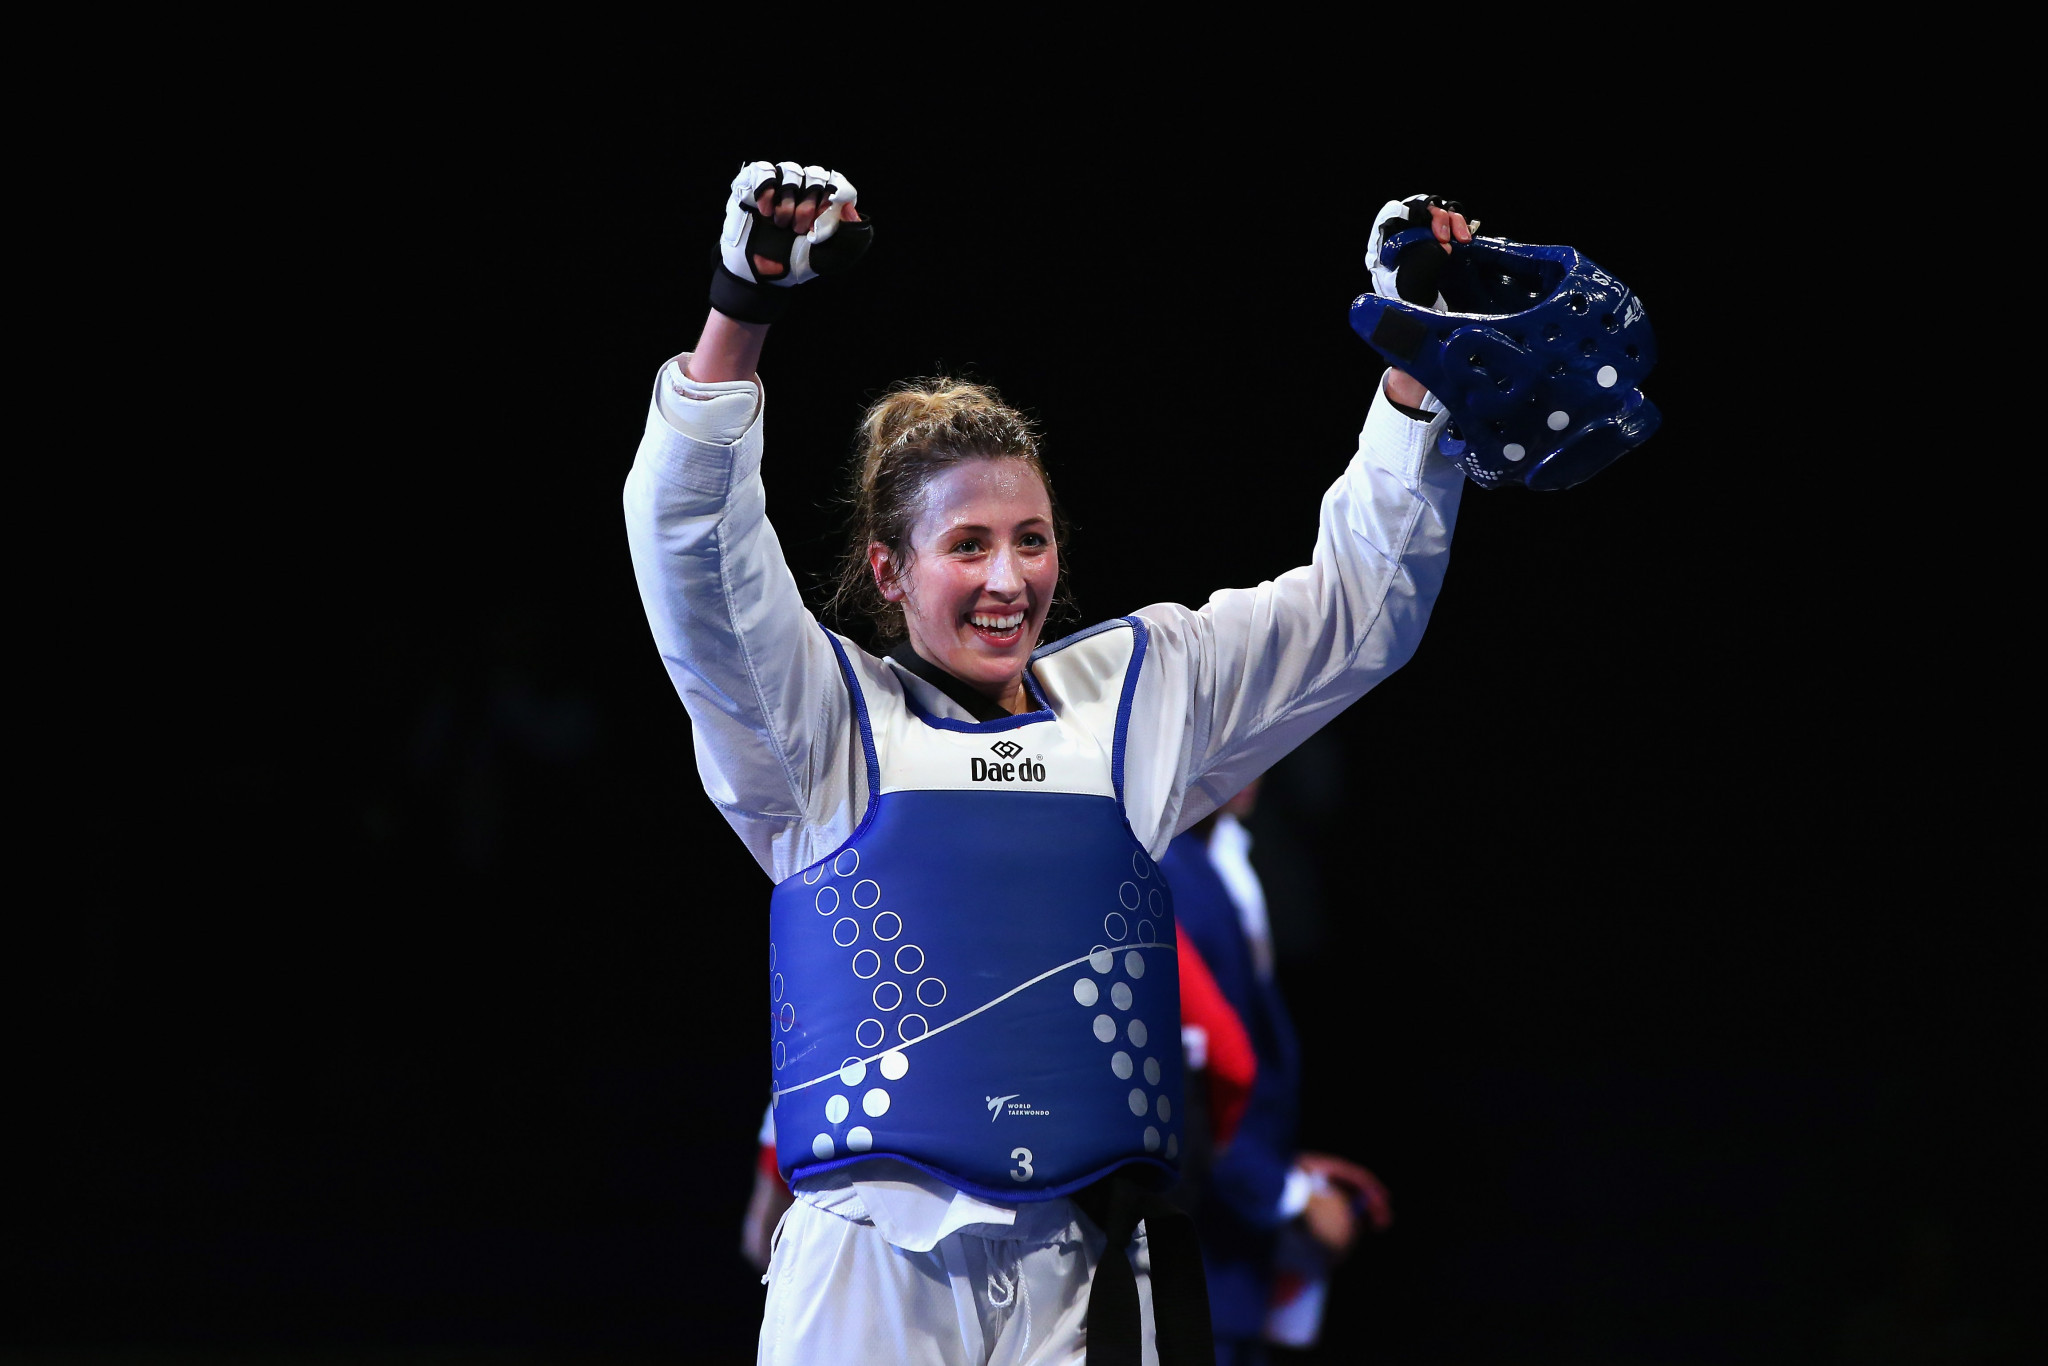 Jones upsets home crowd on quarter-finals day at World Taekwondo Grand Slam Champions Series